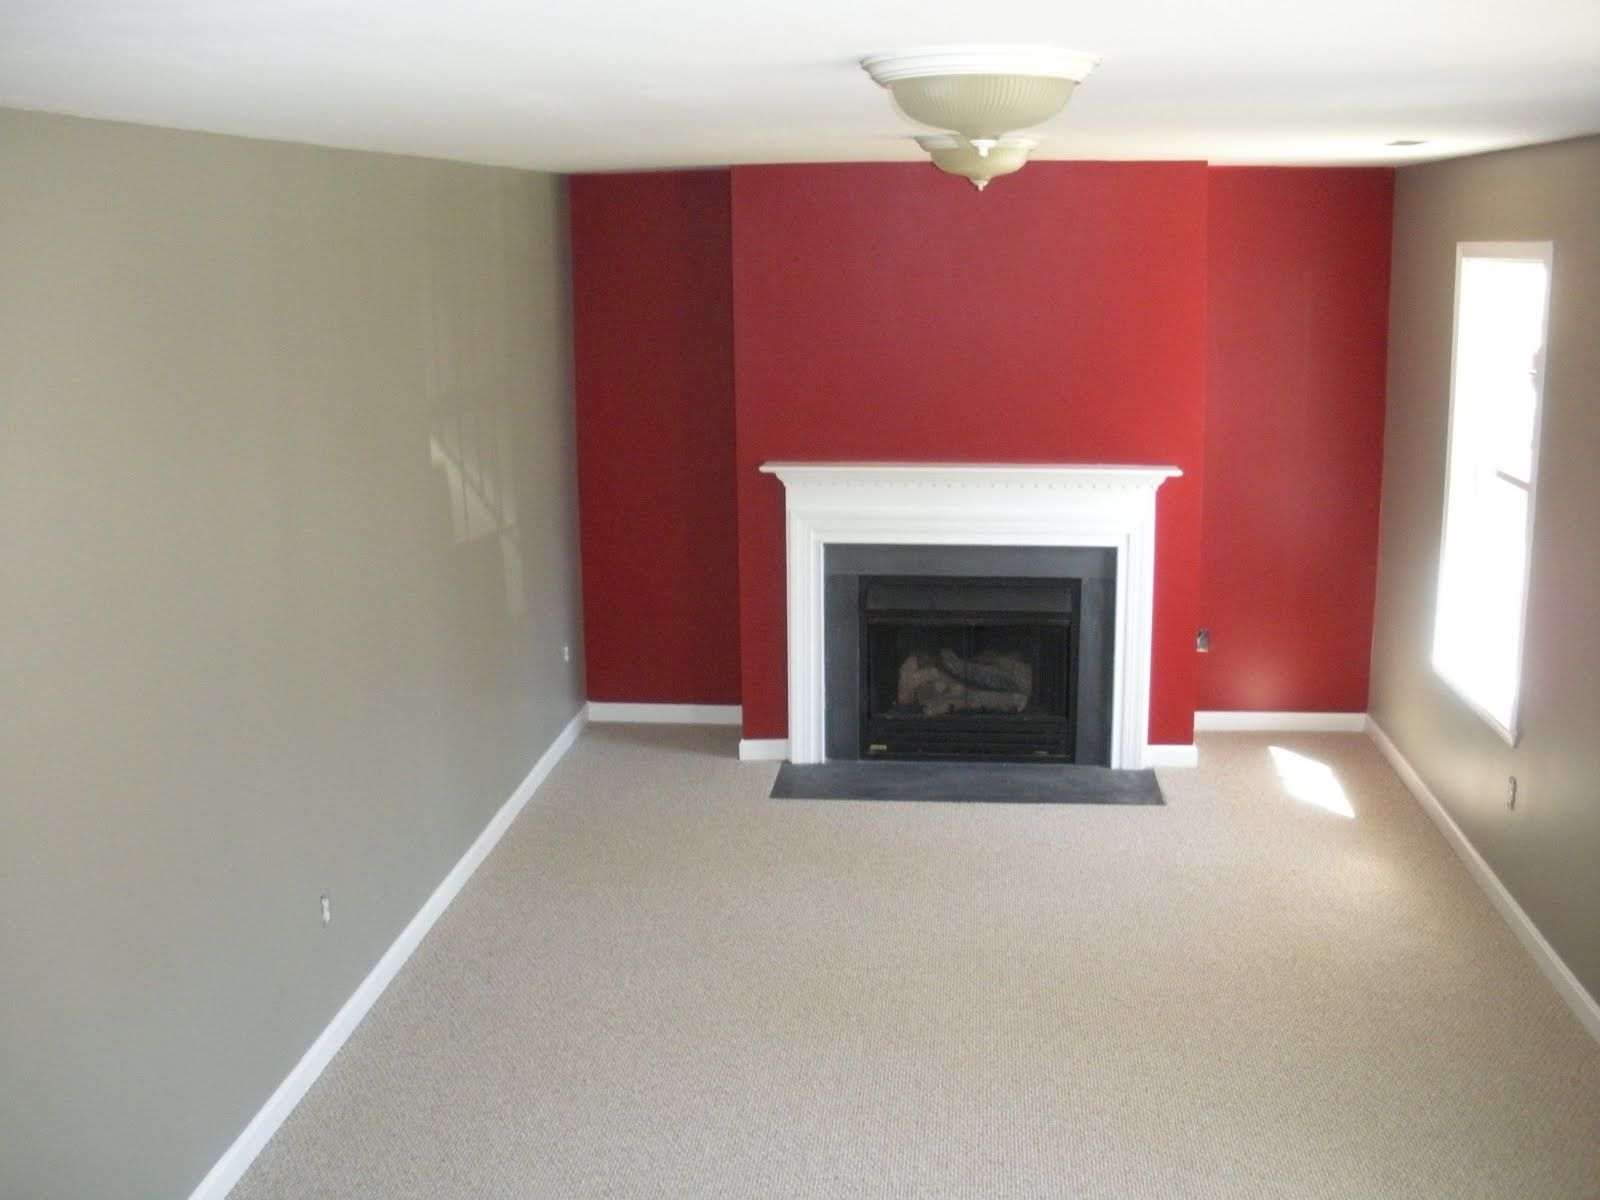 Accent Wall Benjamin Moore Caliente Red Rockport Gray And Wilmington Tan